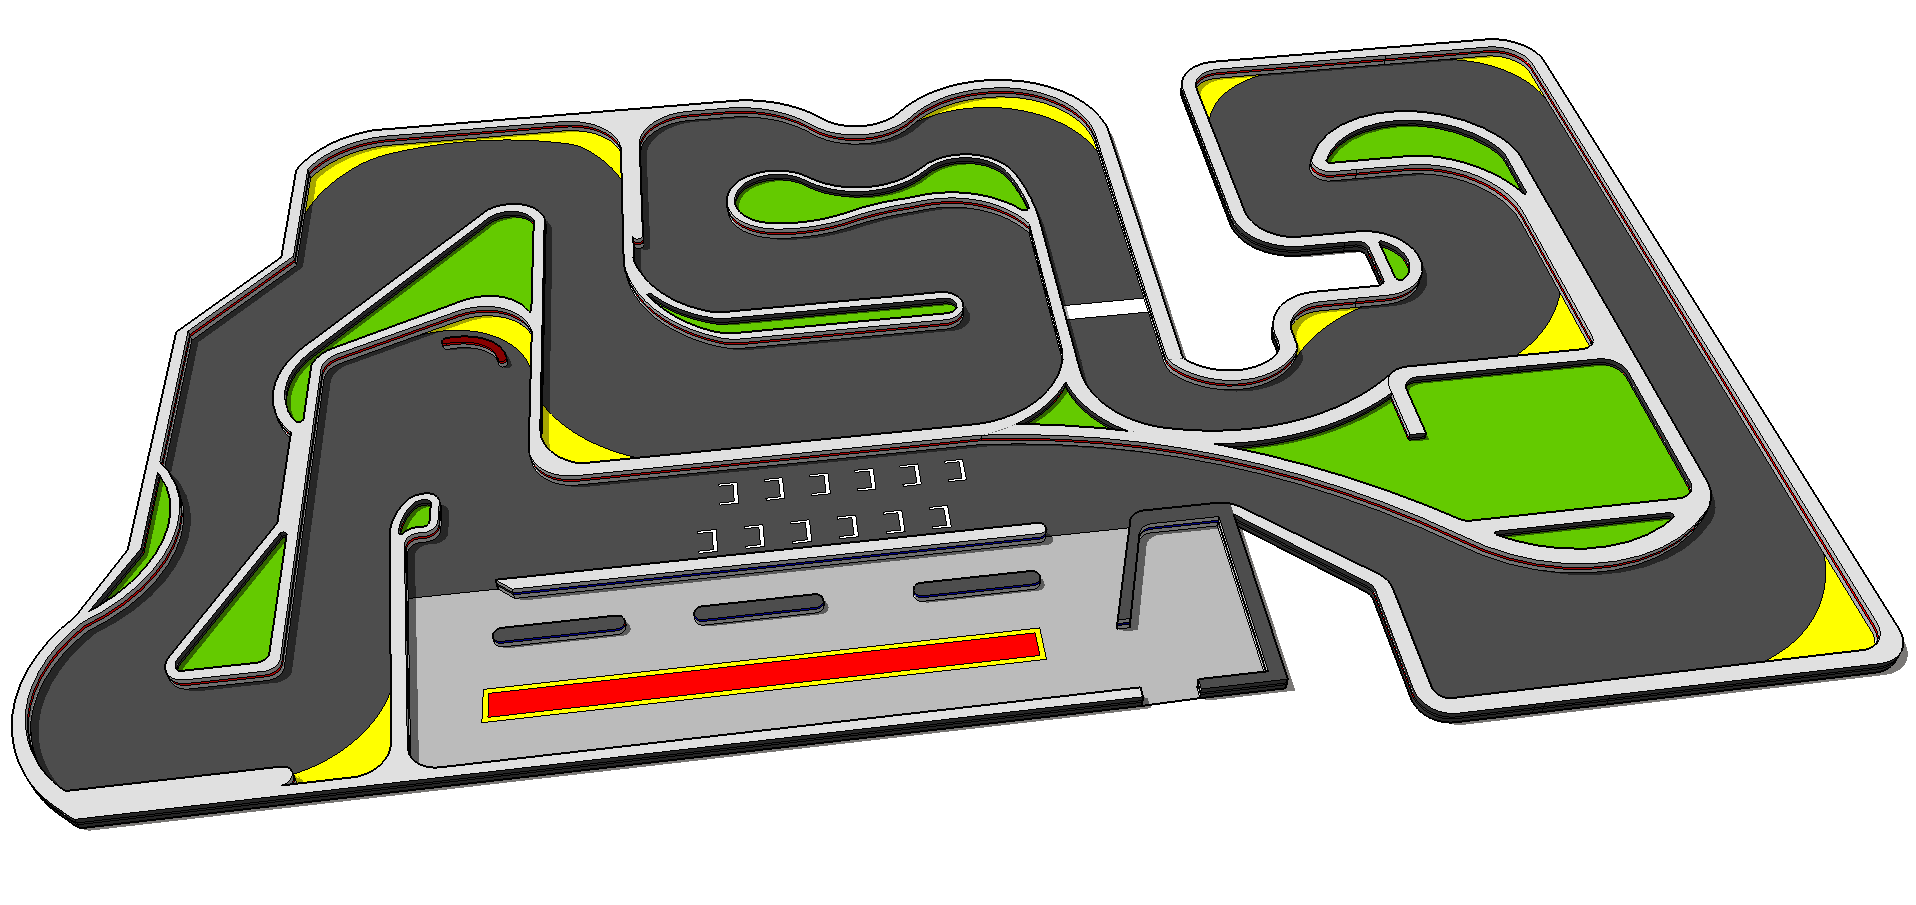 The tracks super speedway. Track clipart indoor track